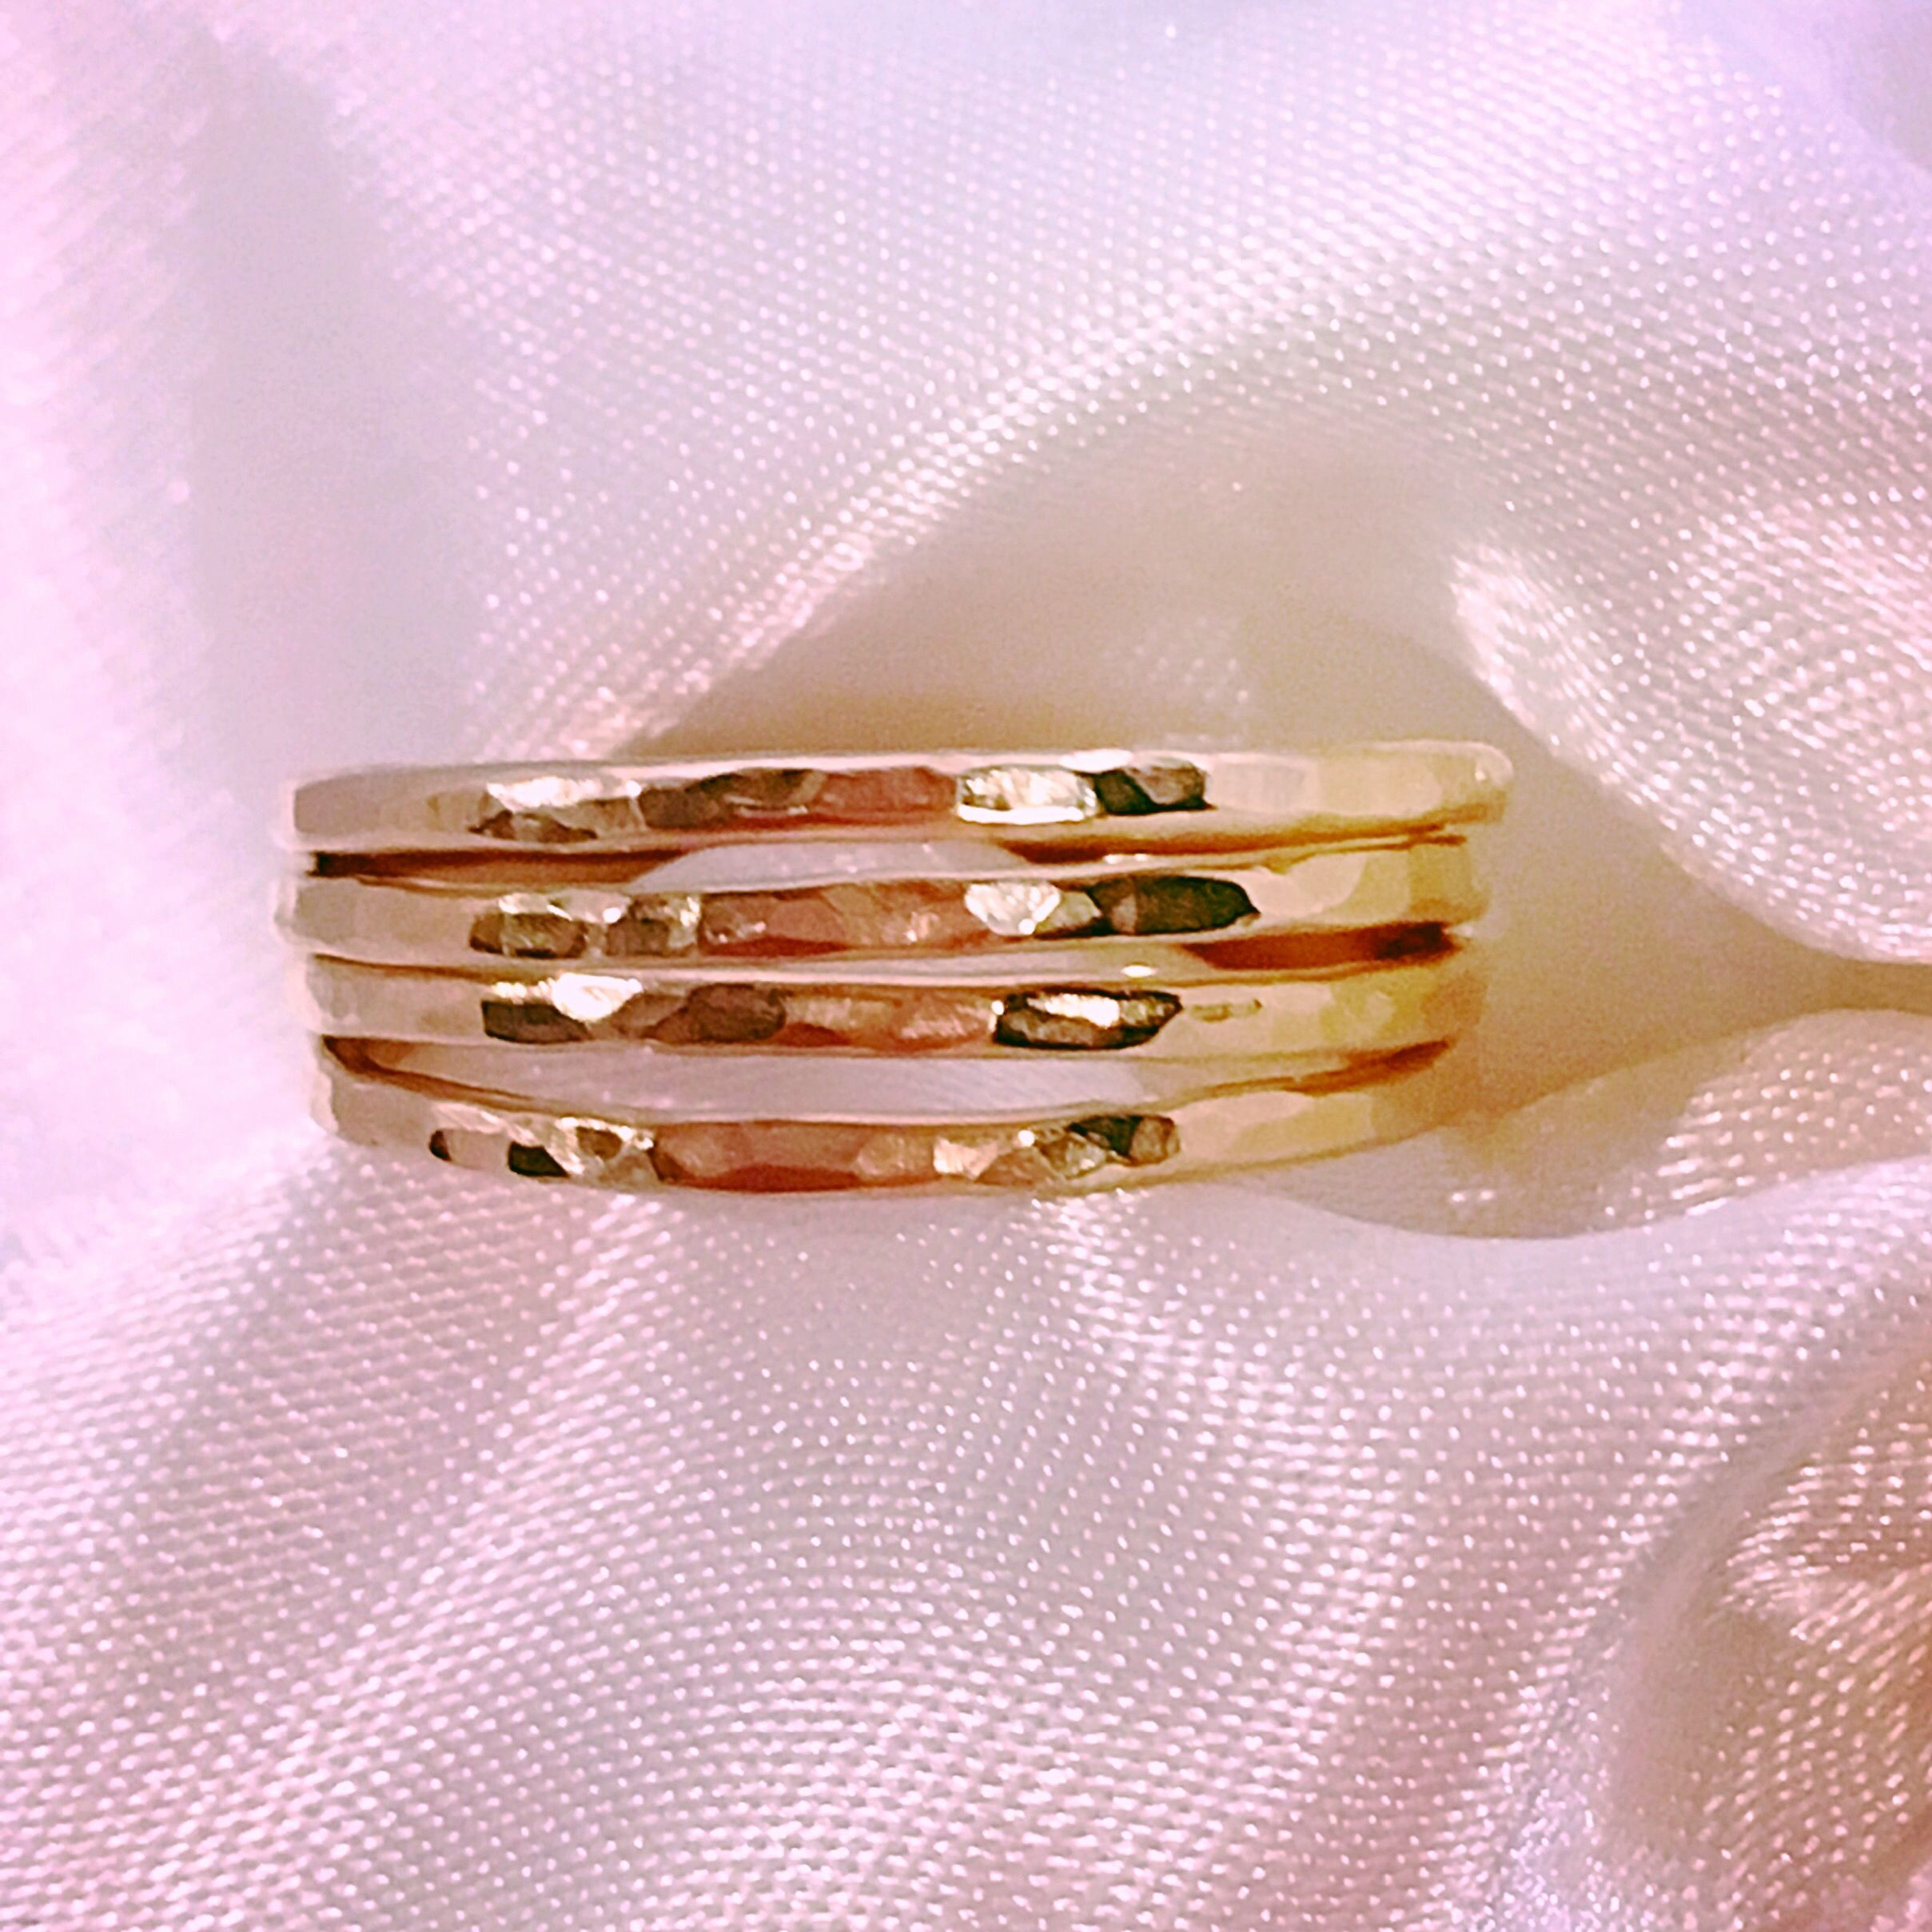 Handcrafted 14ct filled gold stacking rings :) only £10 each in my ...